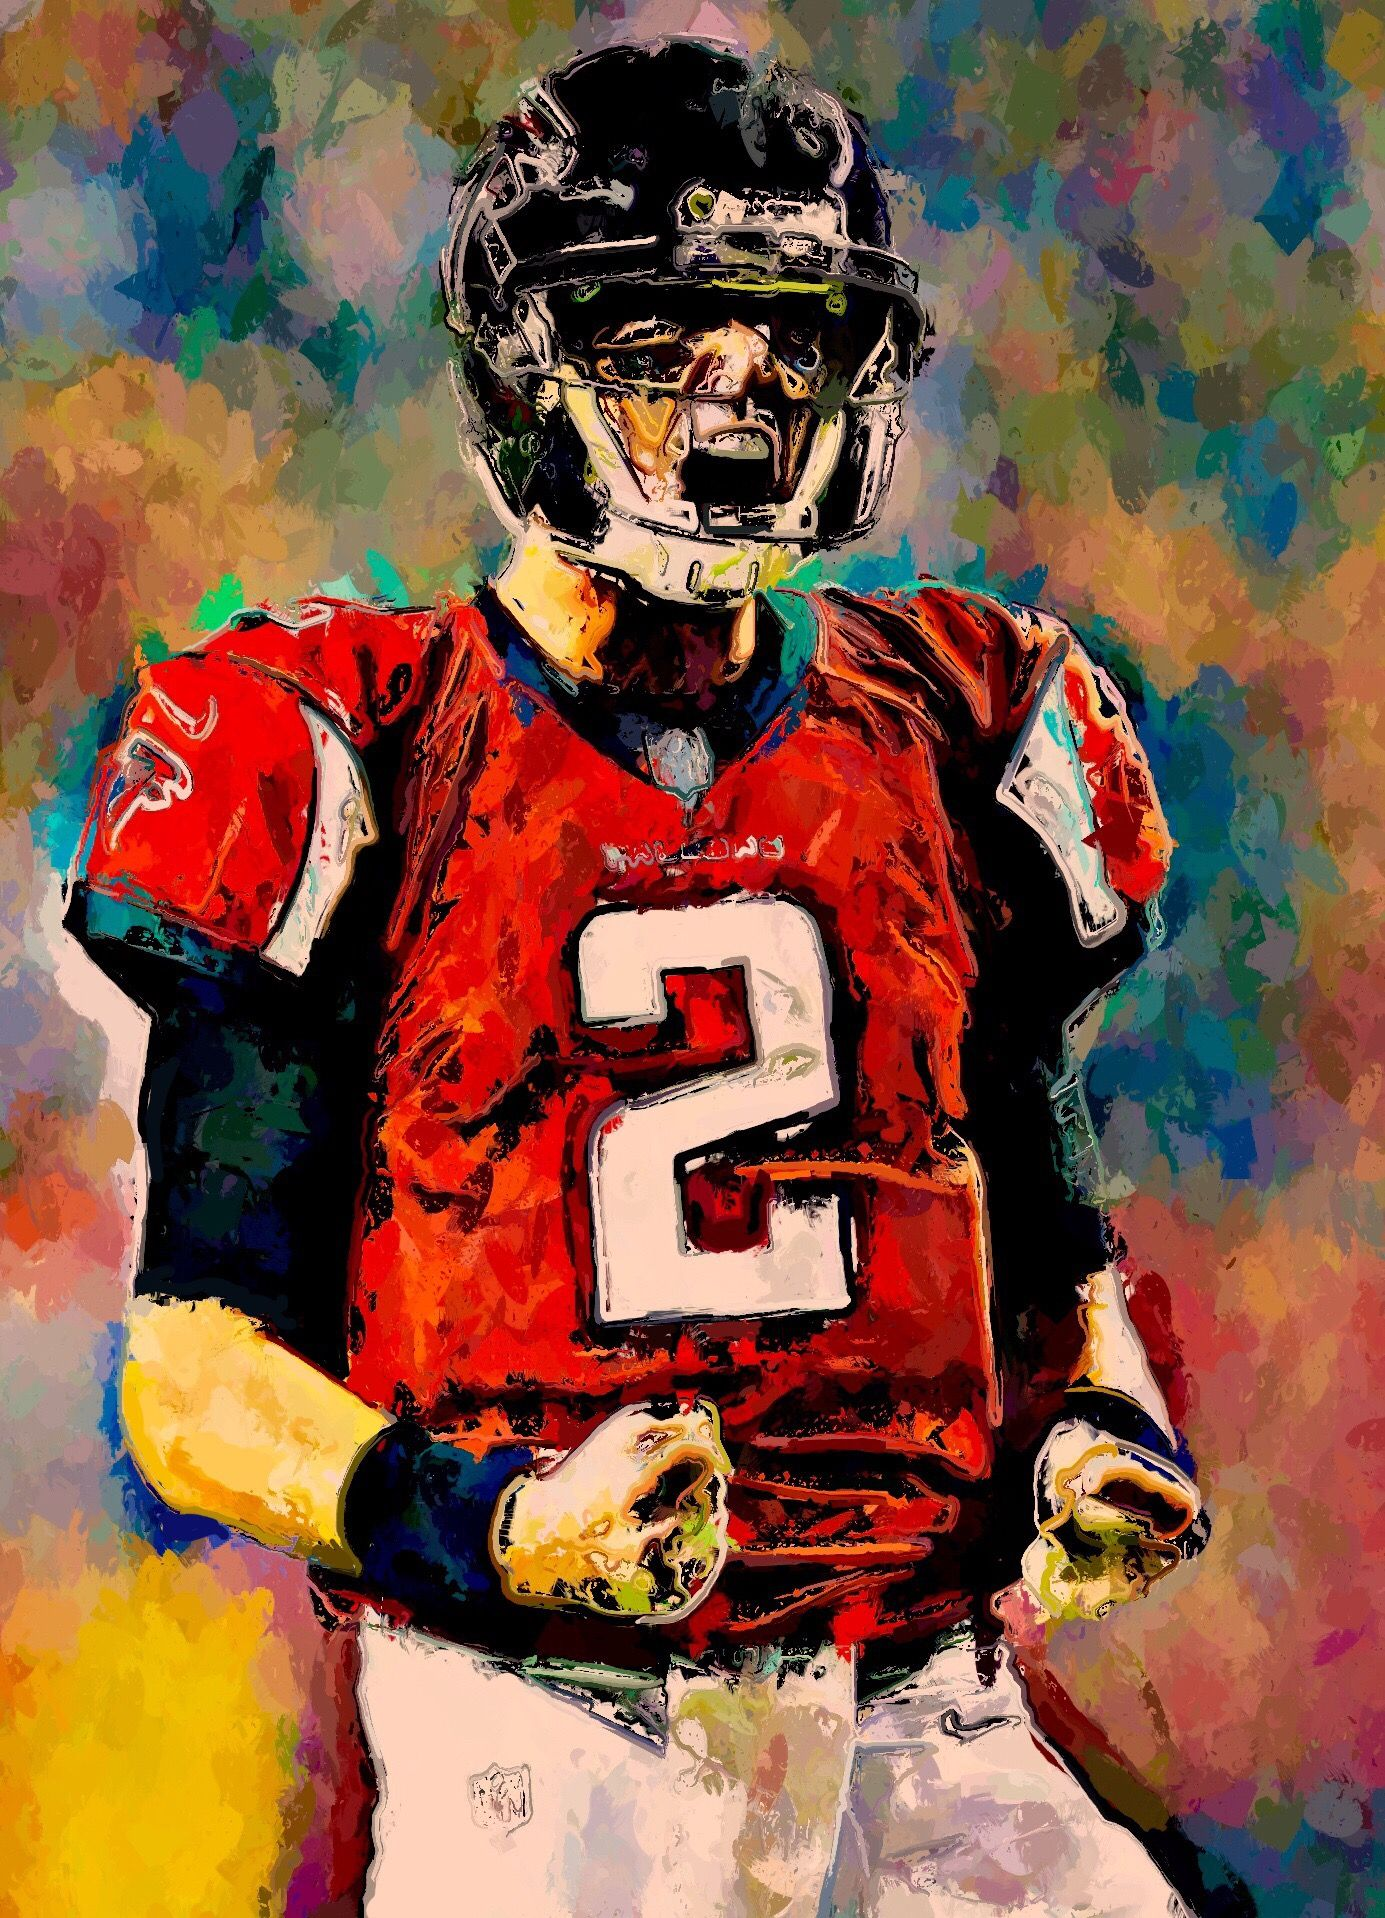 Matt Ryan 2018 Matty Ice Keeps The Hunt Alive Mattyice Mattryan Falcons Atlantafalcons Nfc Playoffs Nfl Sports Art Football Helmets Football